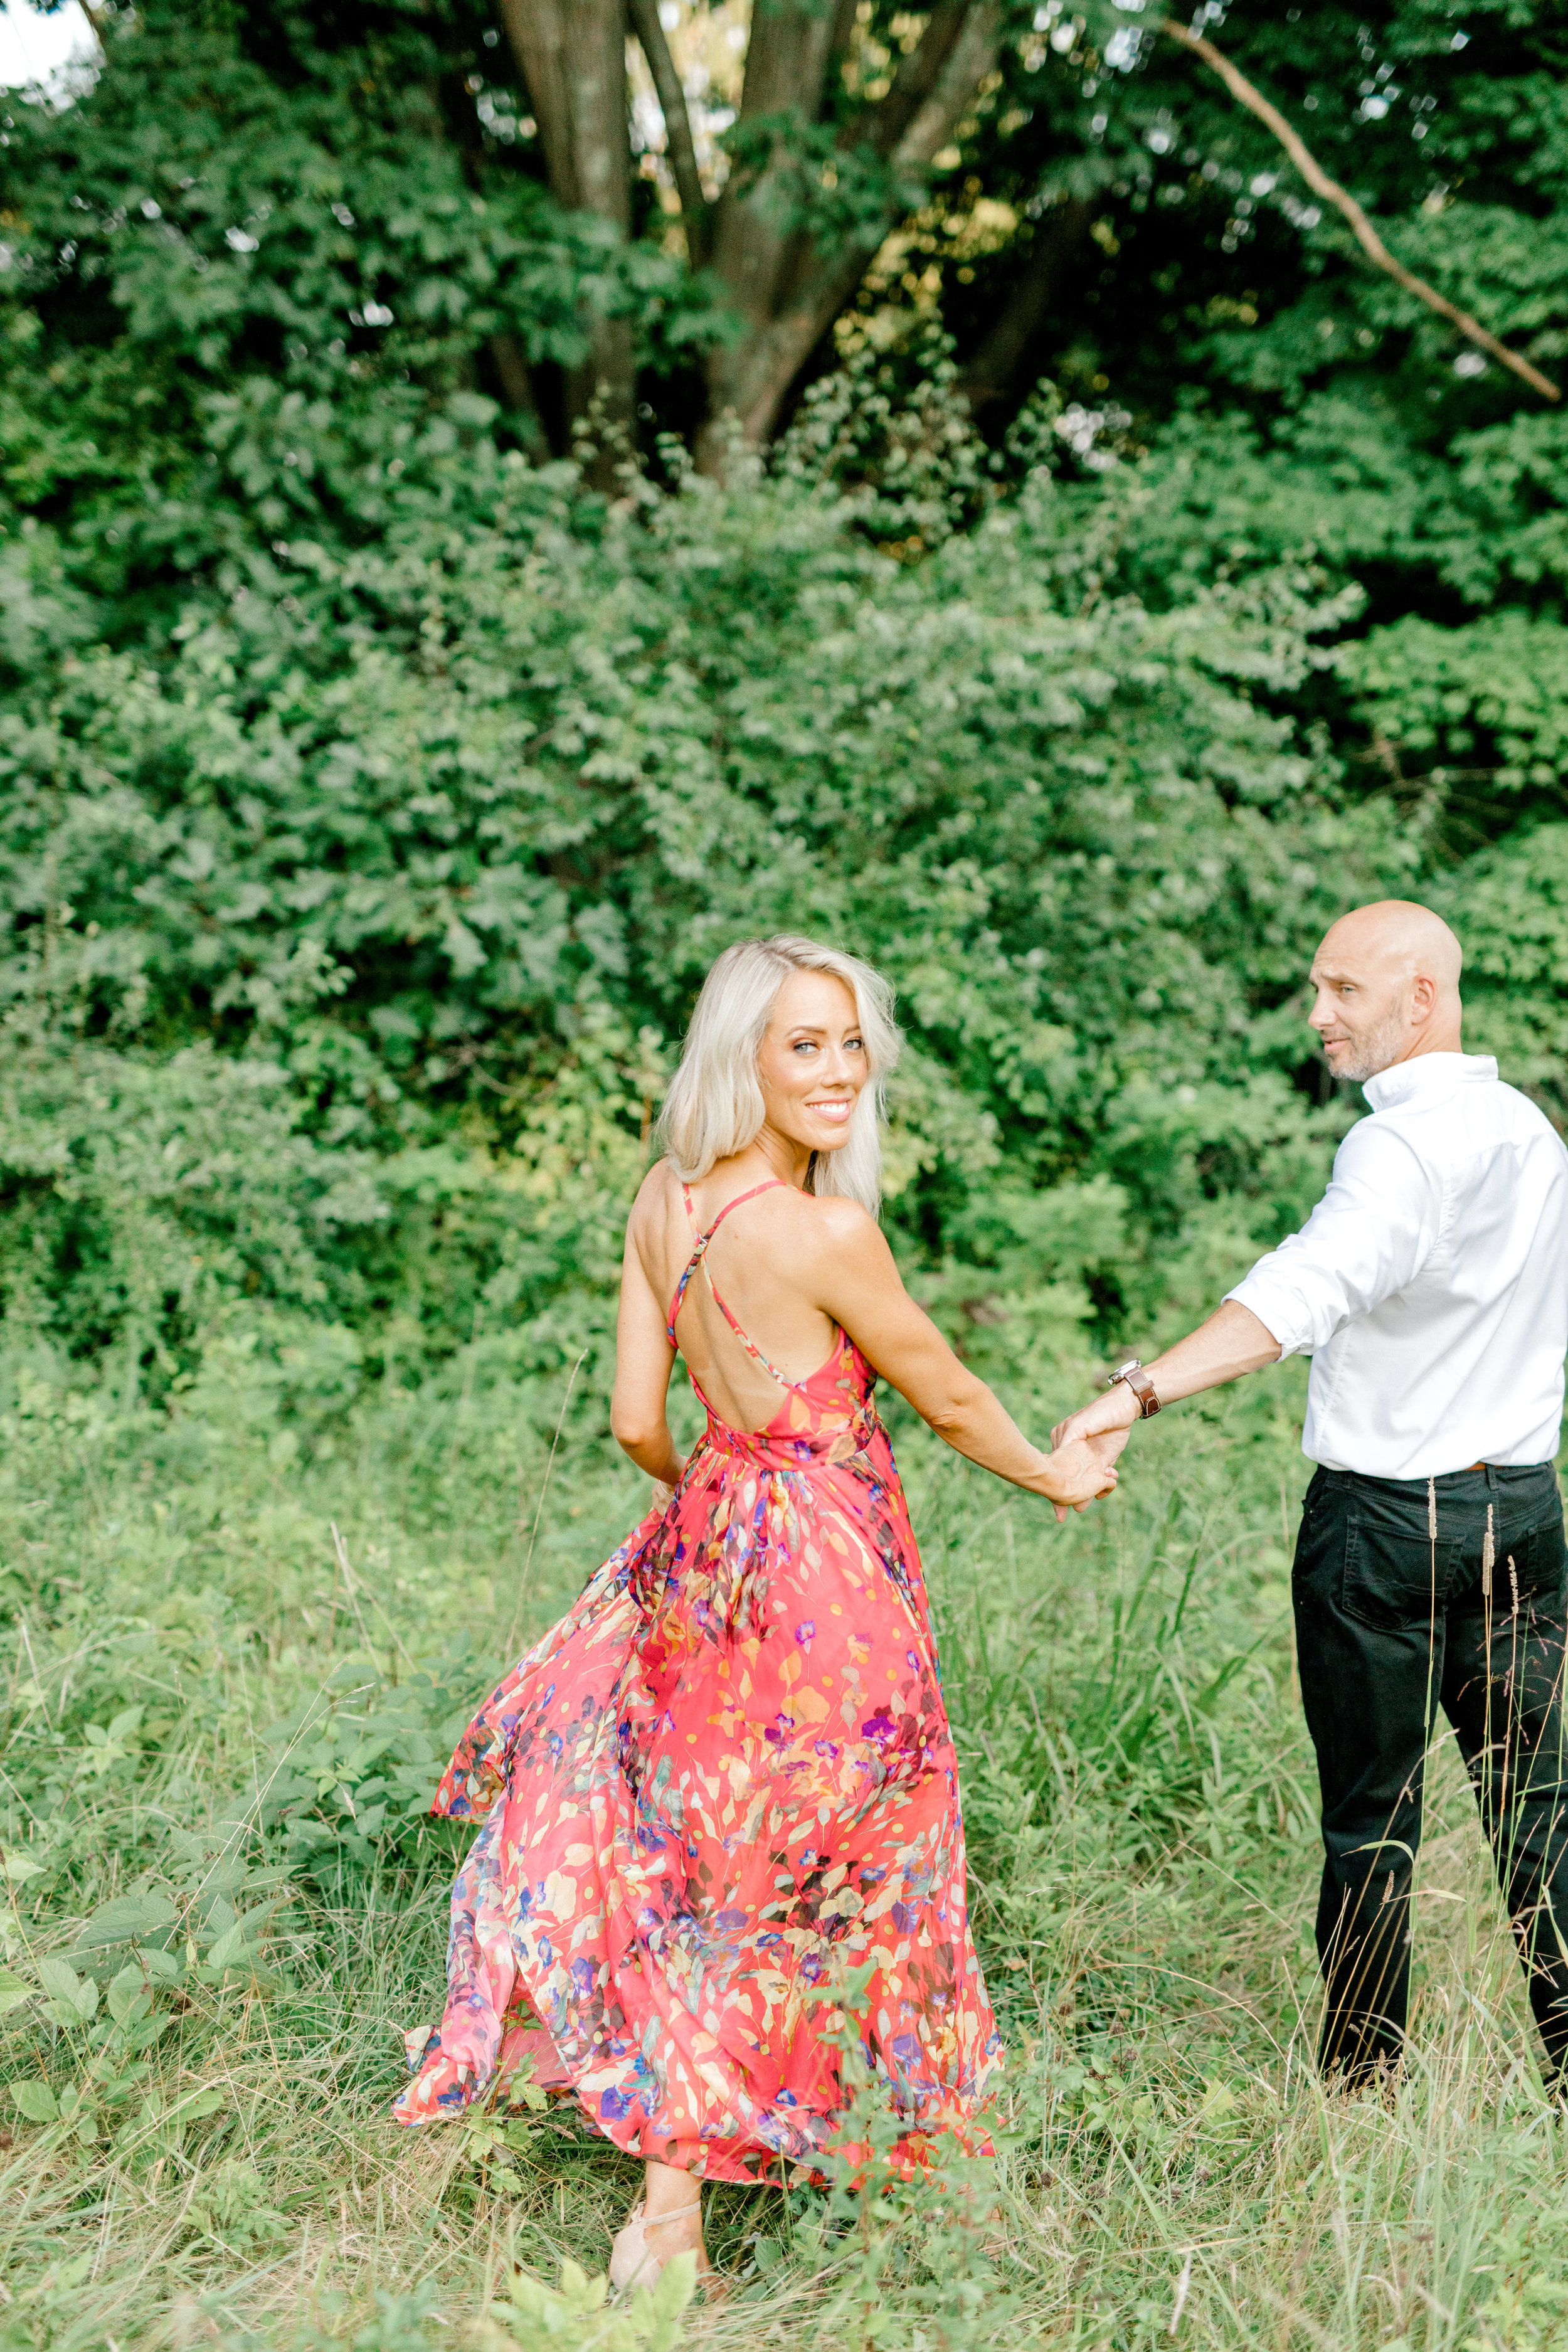 Liz looks back as her man holds her hand, leading her into their forever during their romantic sunset woodland engagement session at Parque at Ridley Creek